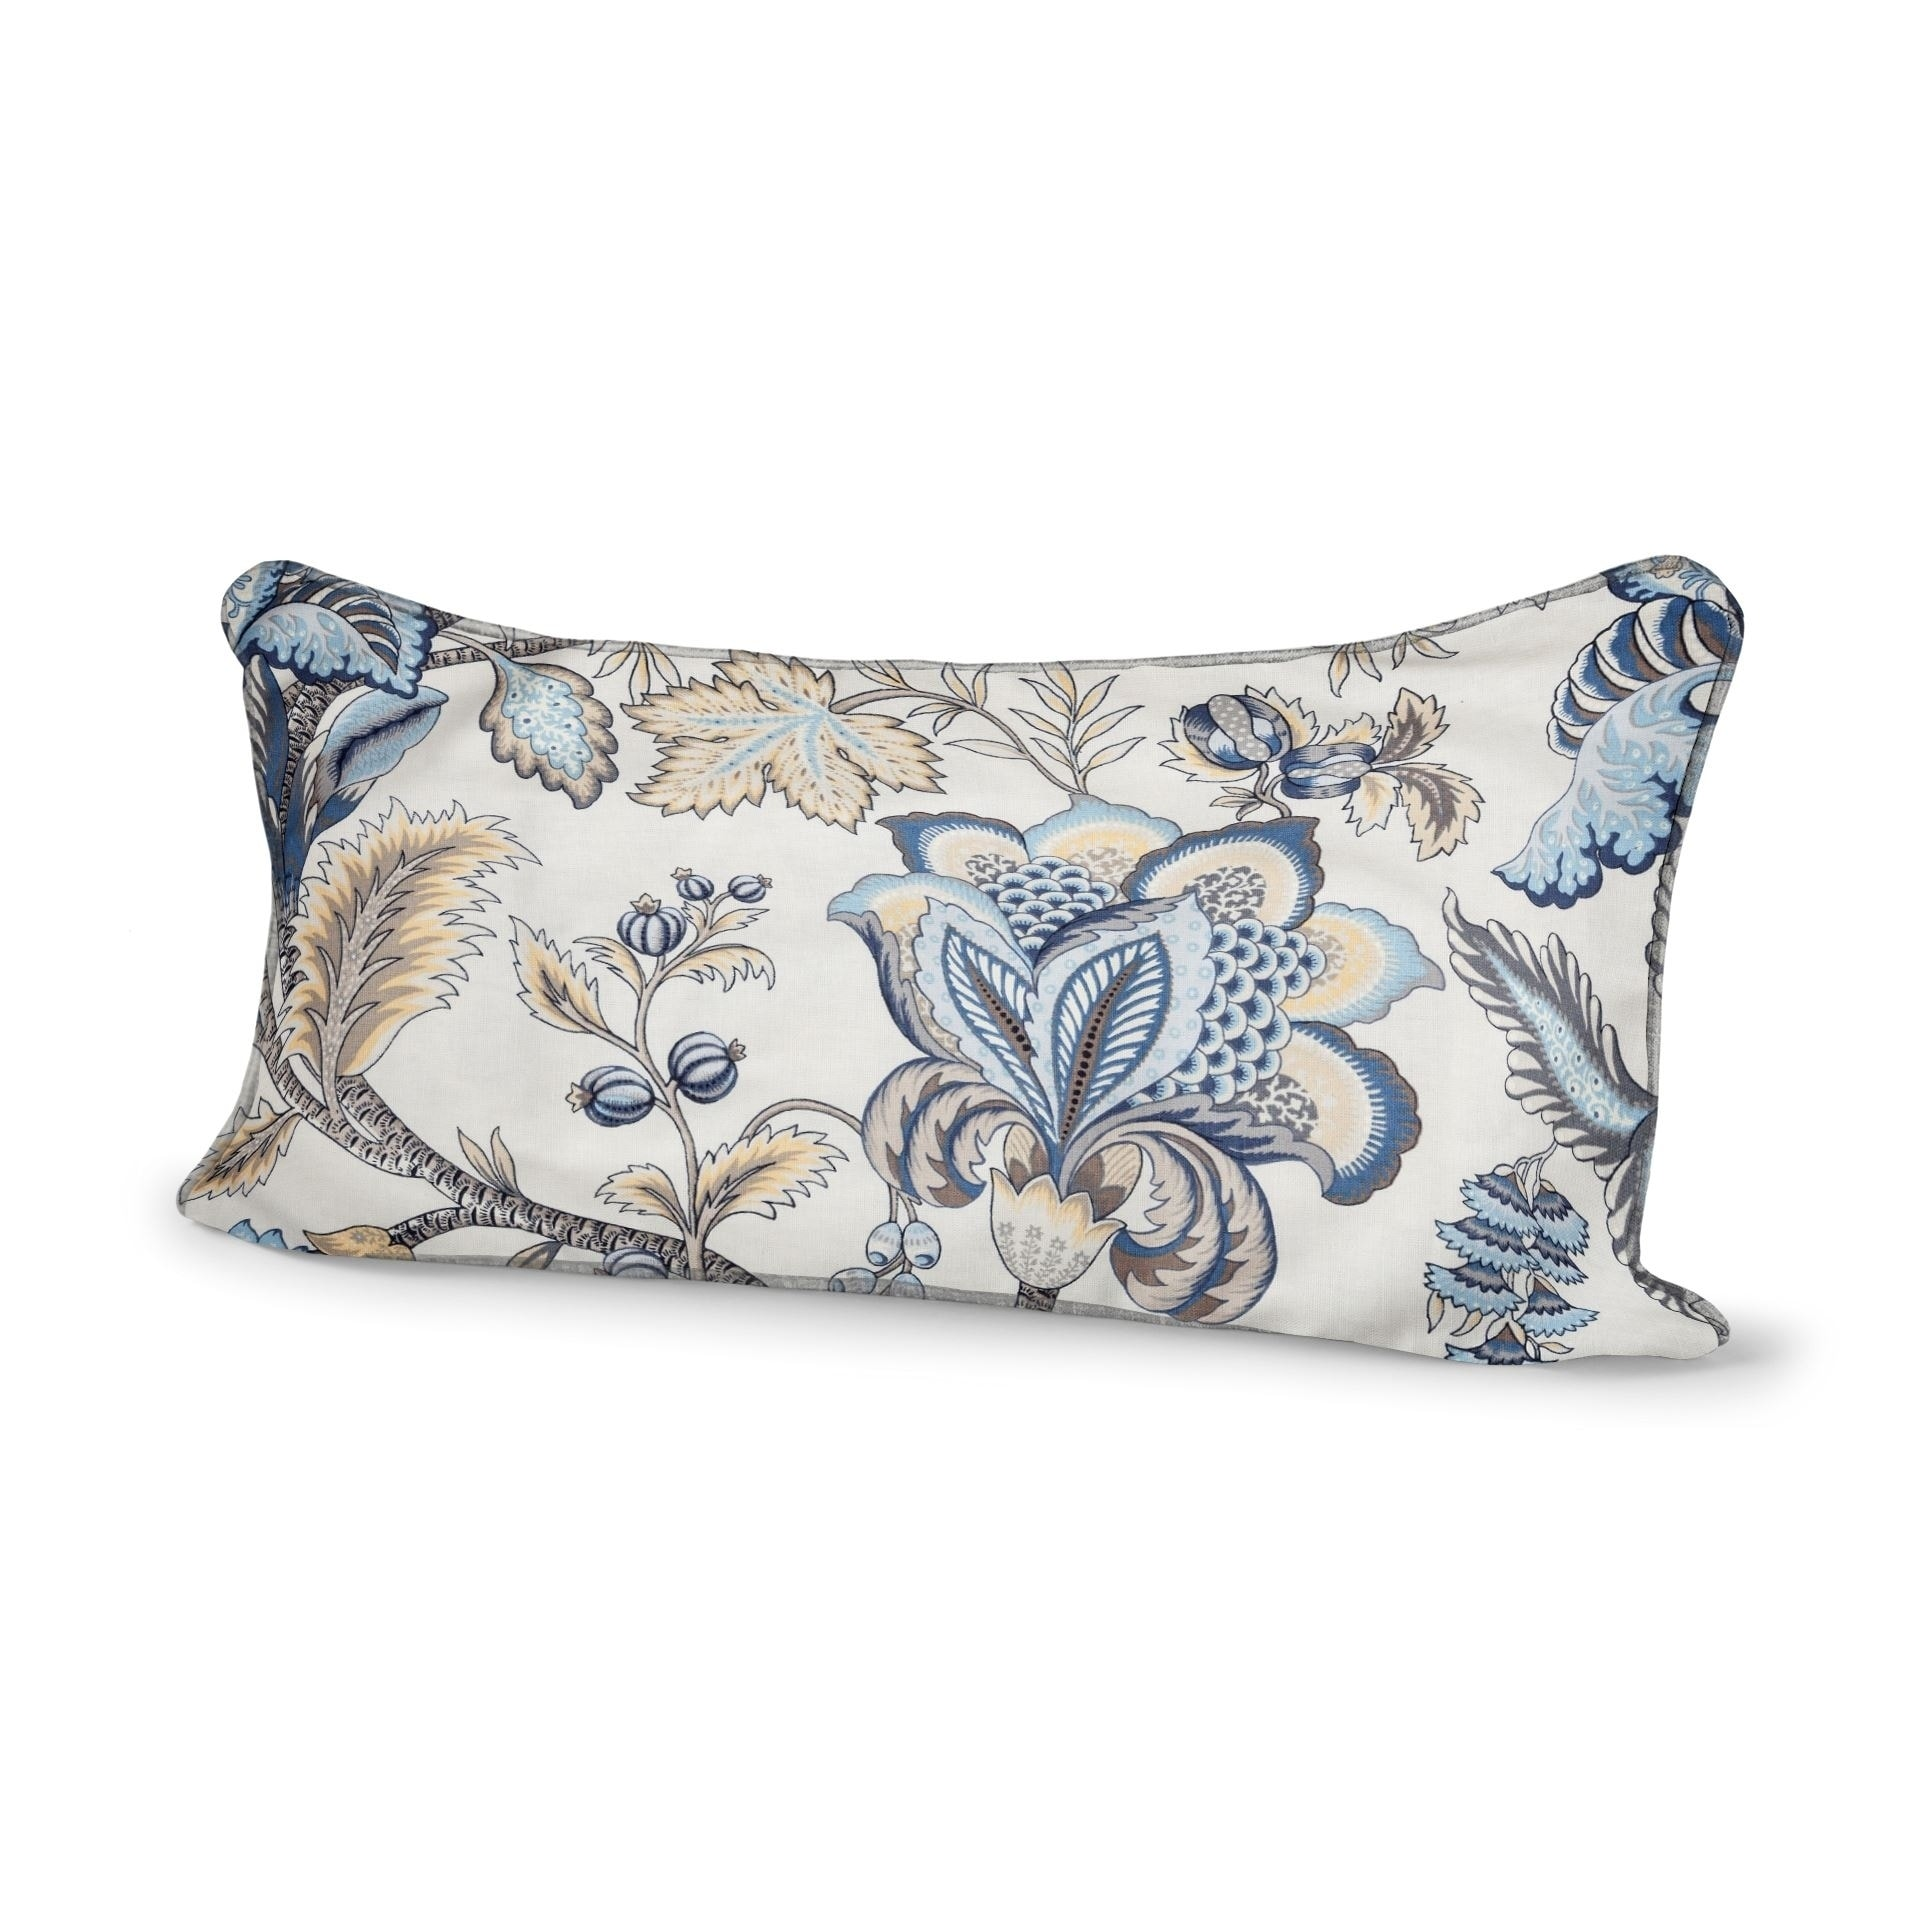 Mercana Gladious IV 14 x 26 (cover only) Decorative Pillow